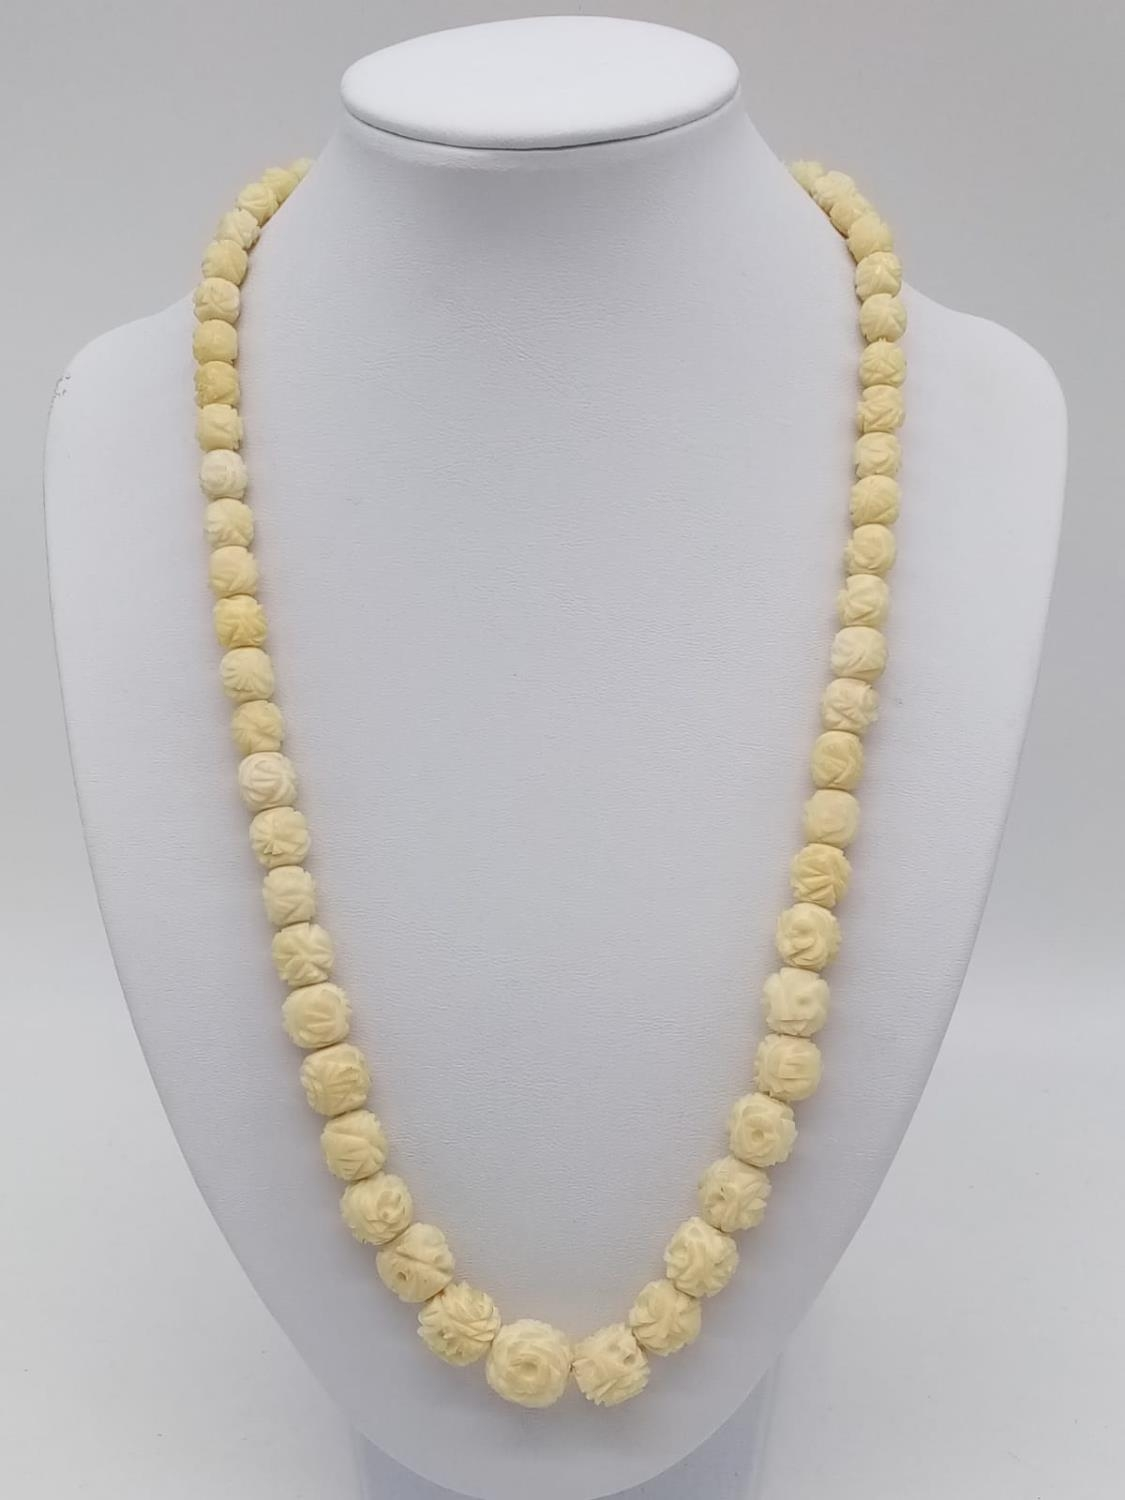 Late 19th Century hand crafted graduated ivory necklace 40.5g, 50cm long. - Image 3 of 4